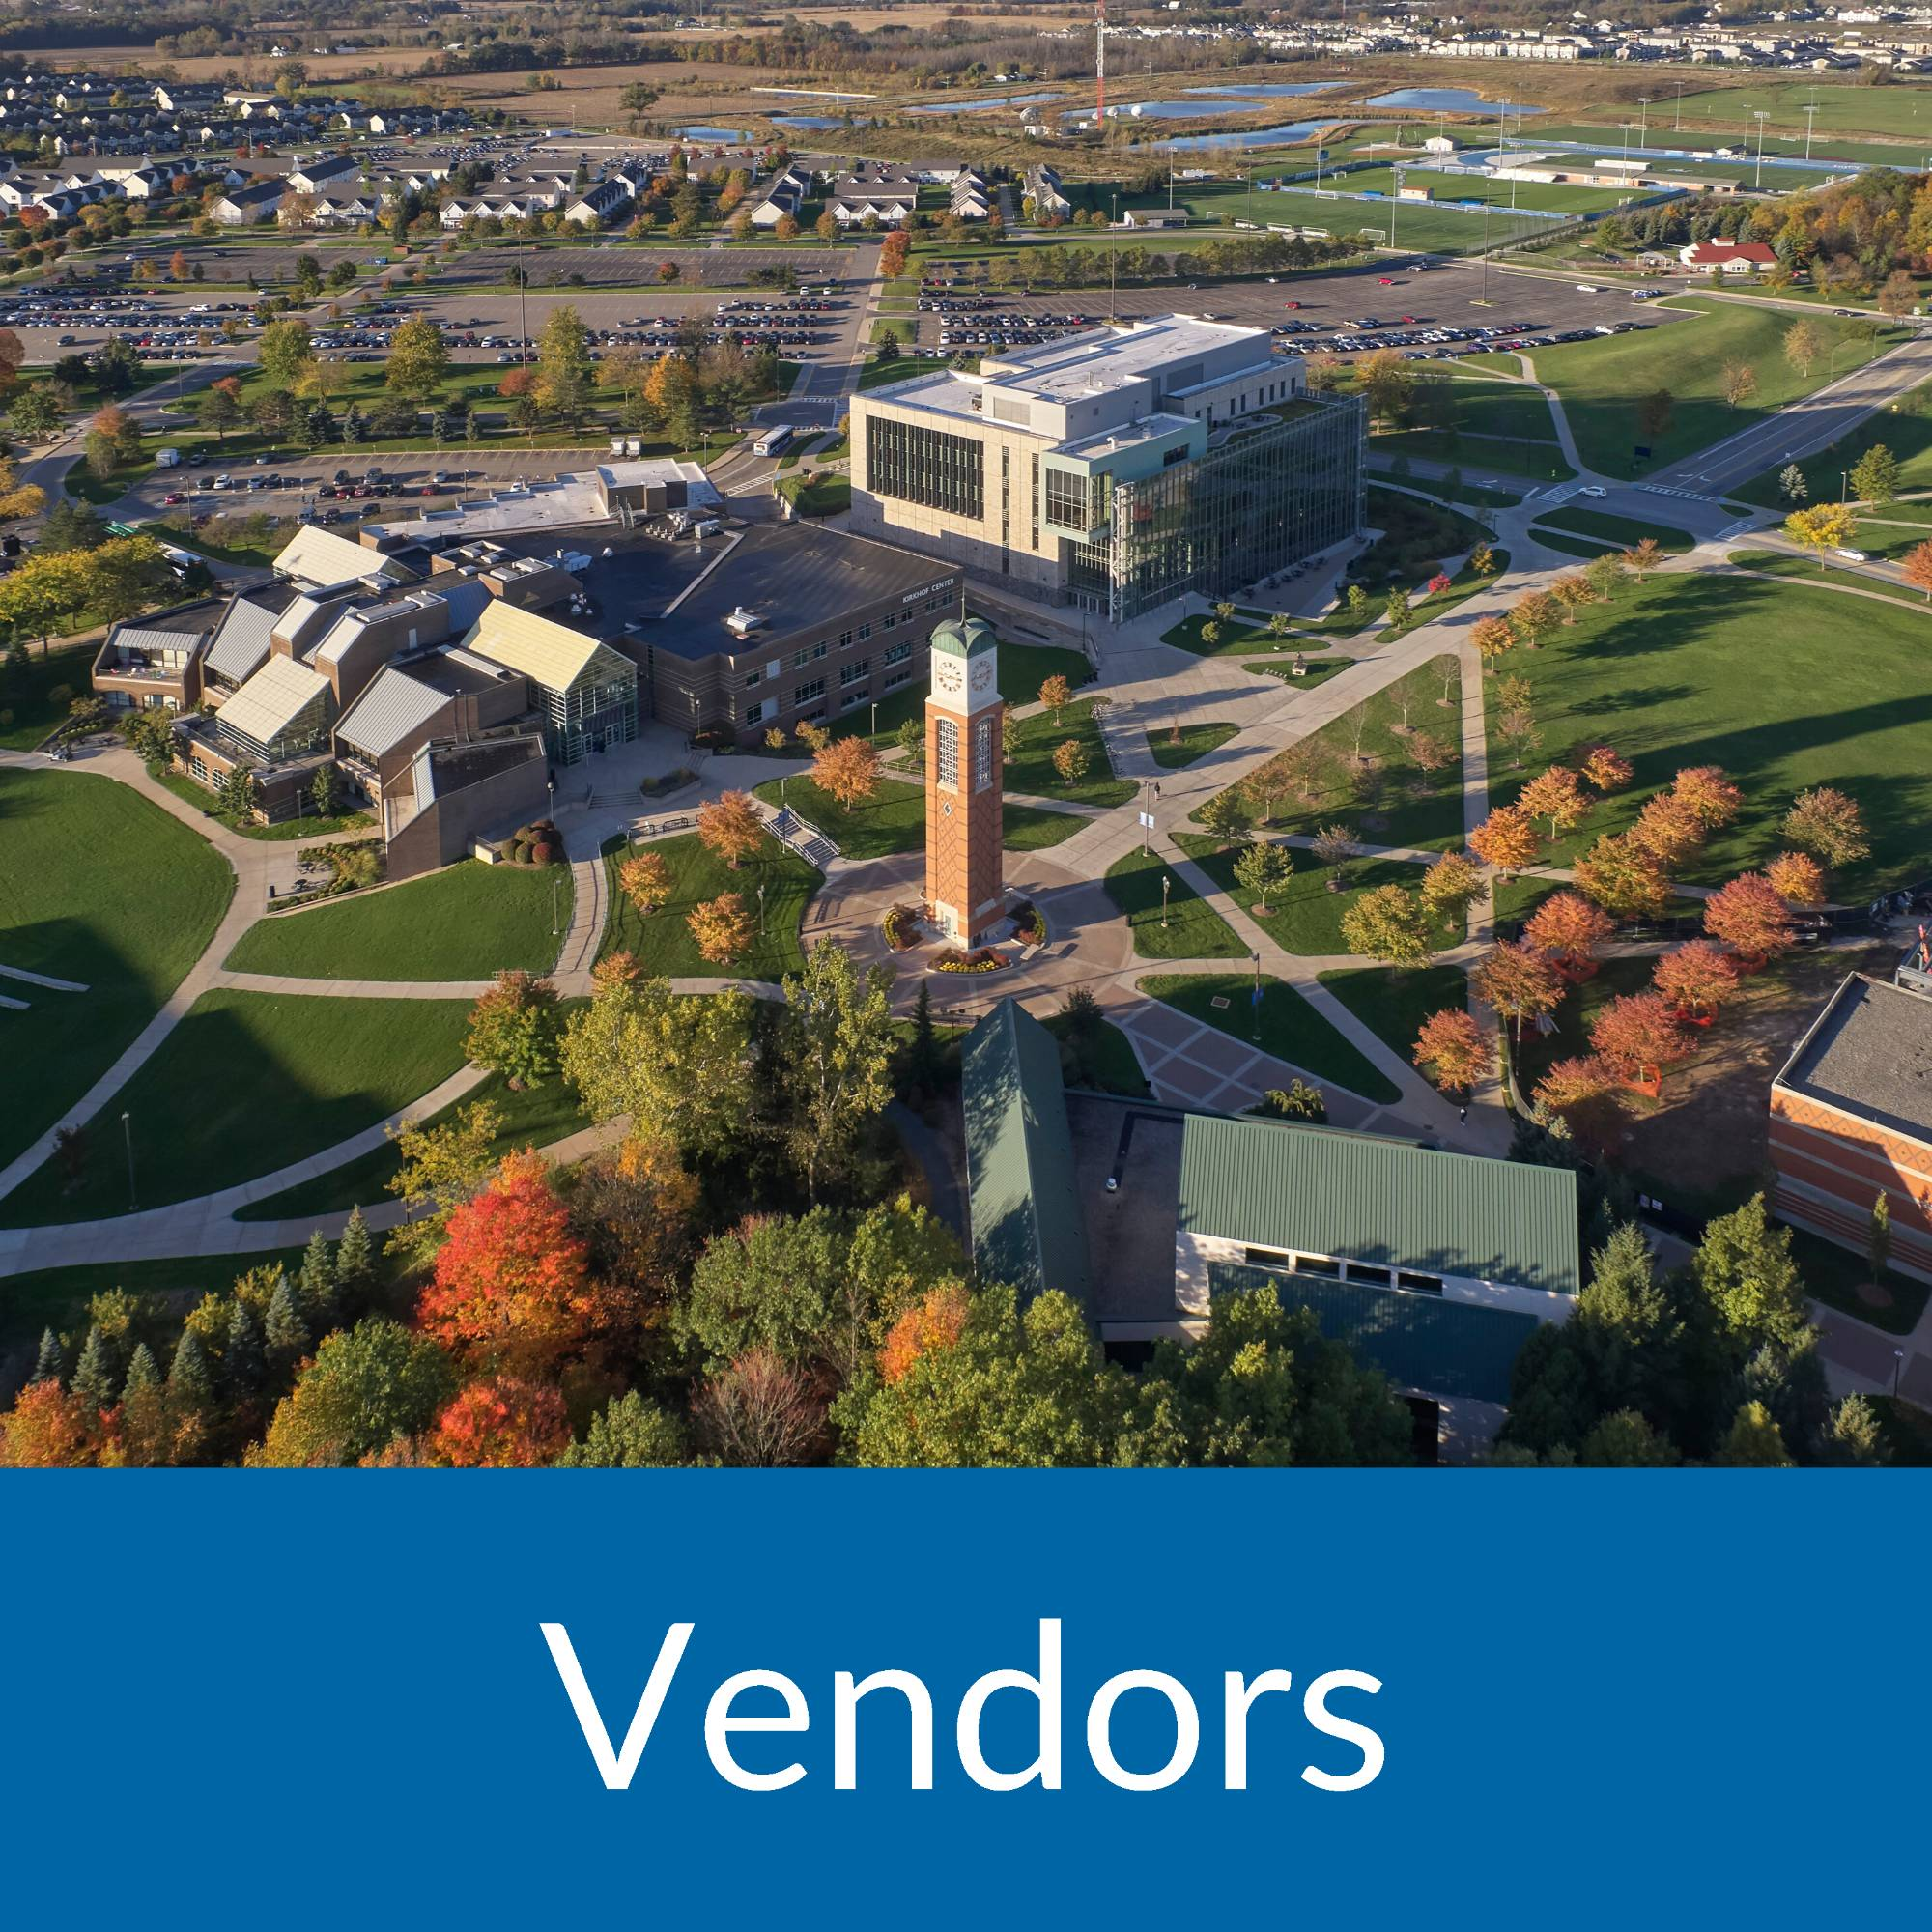 Services for Vendors